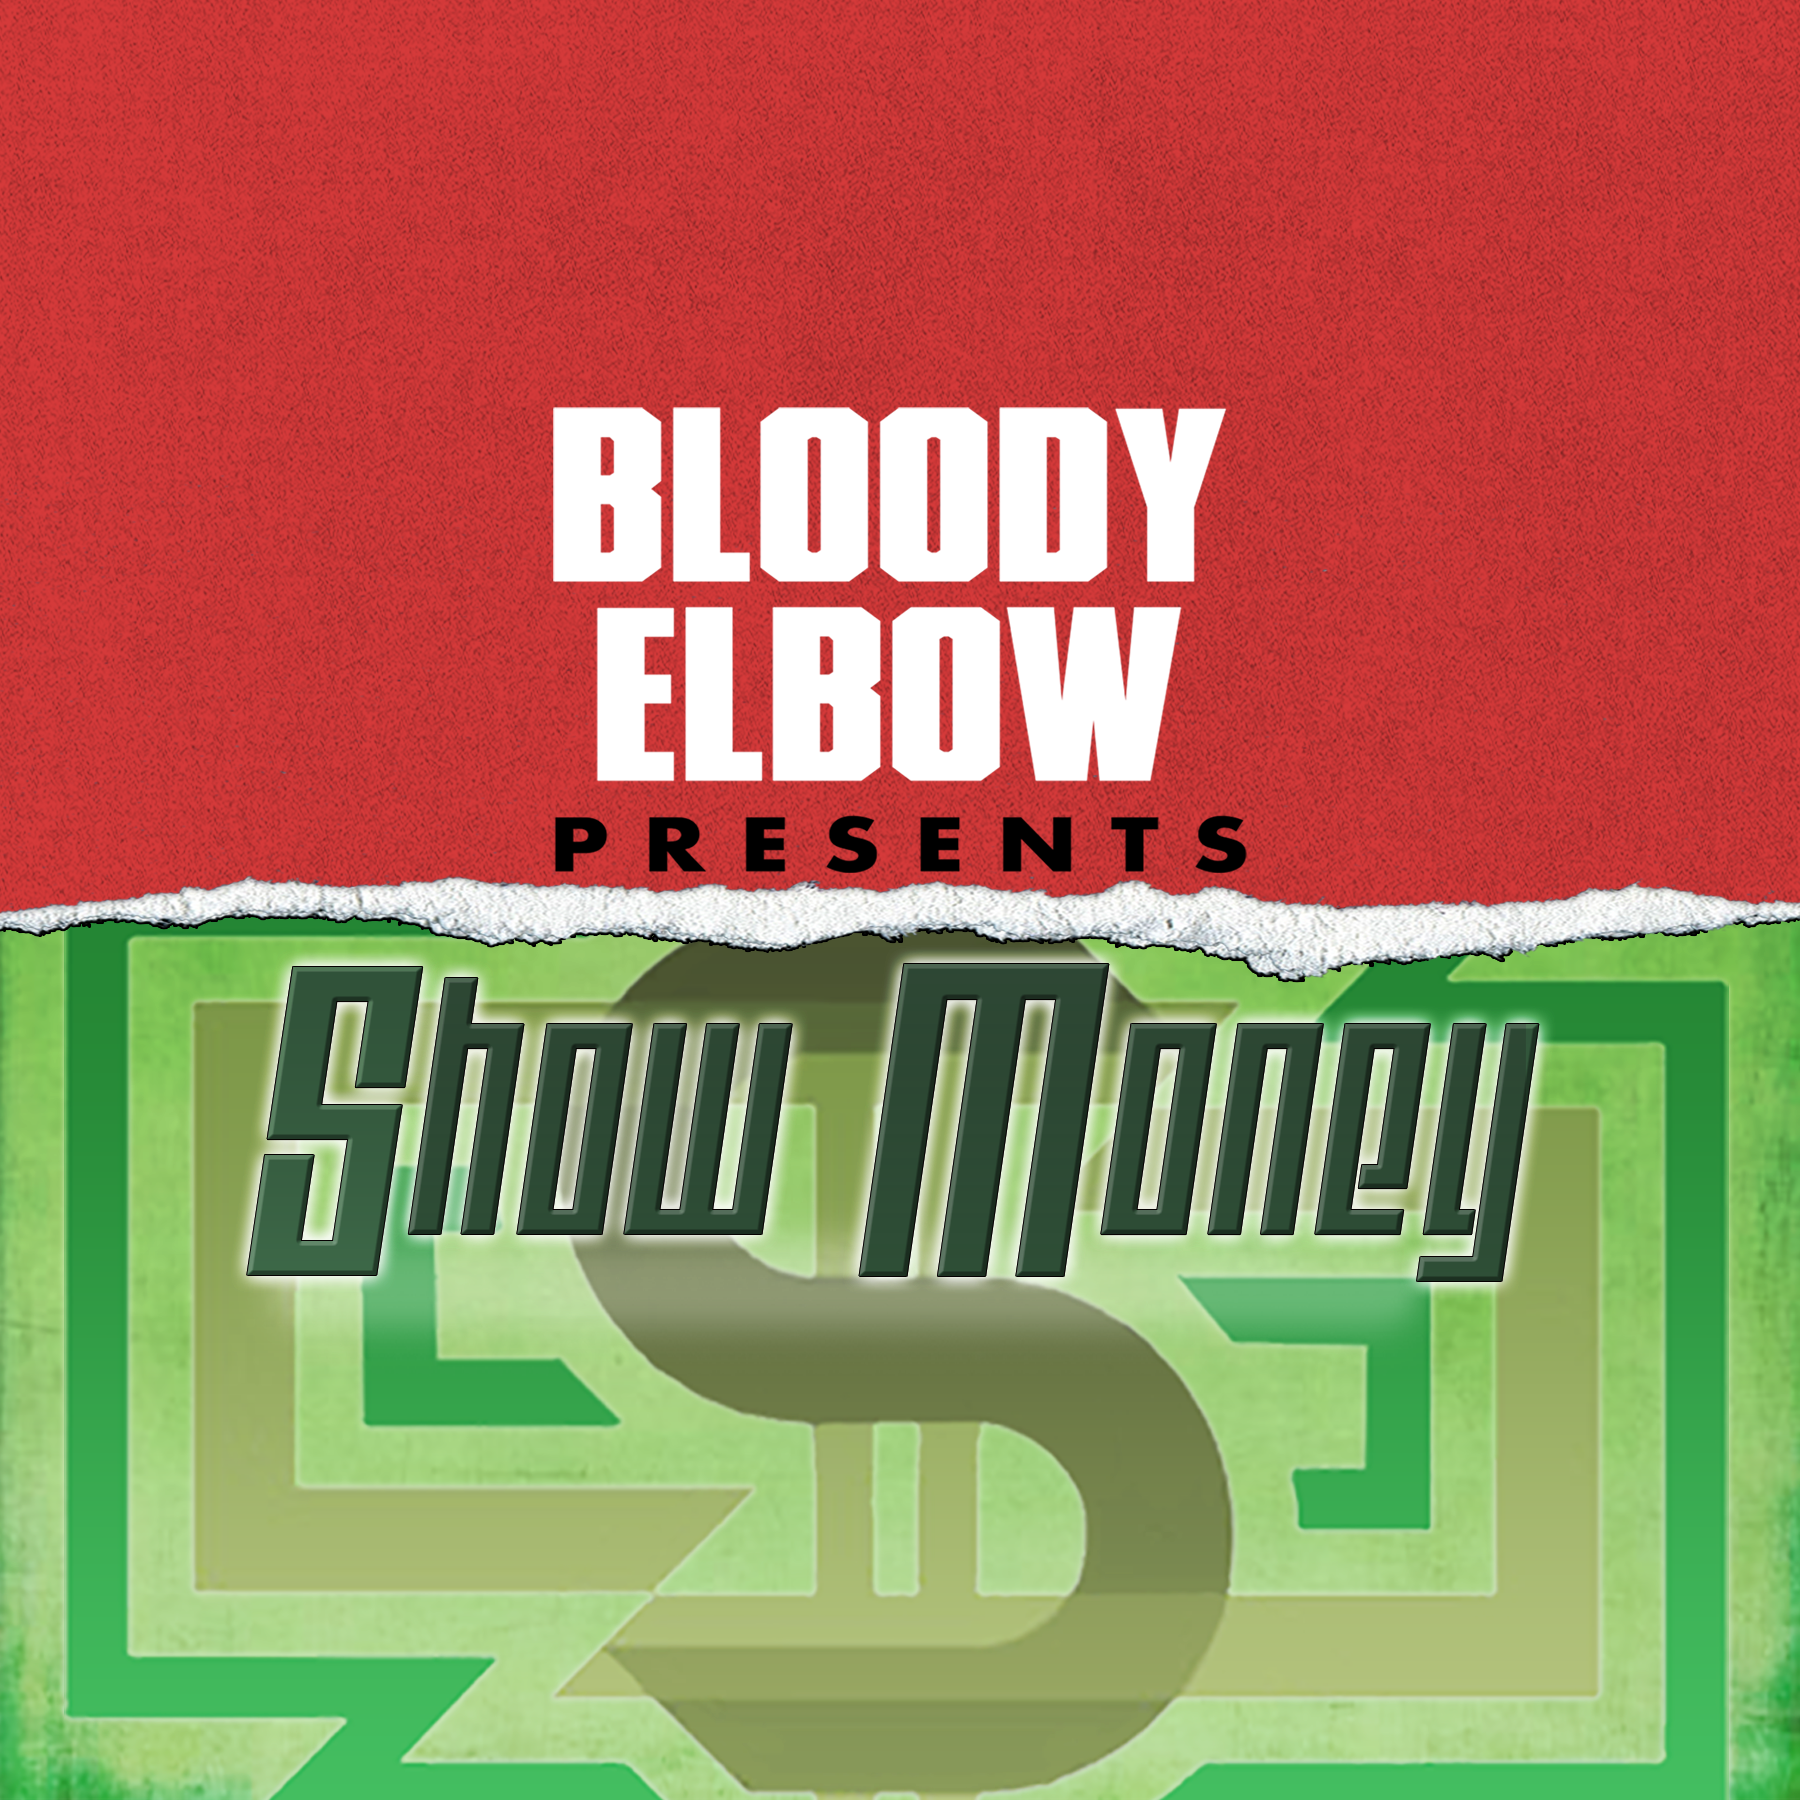 Show Money, MMA Business, UFC Business, UFC Financials, MMA Financials, MMA Economics, UFC Economics, UFC Fighter Pay, Moodys Reports, ONE Championship